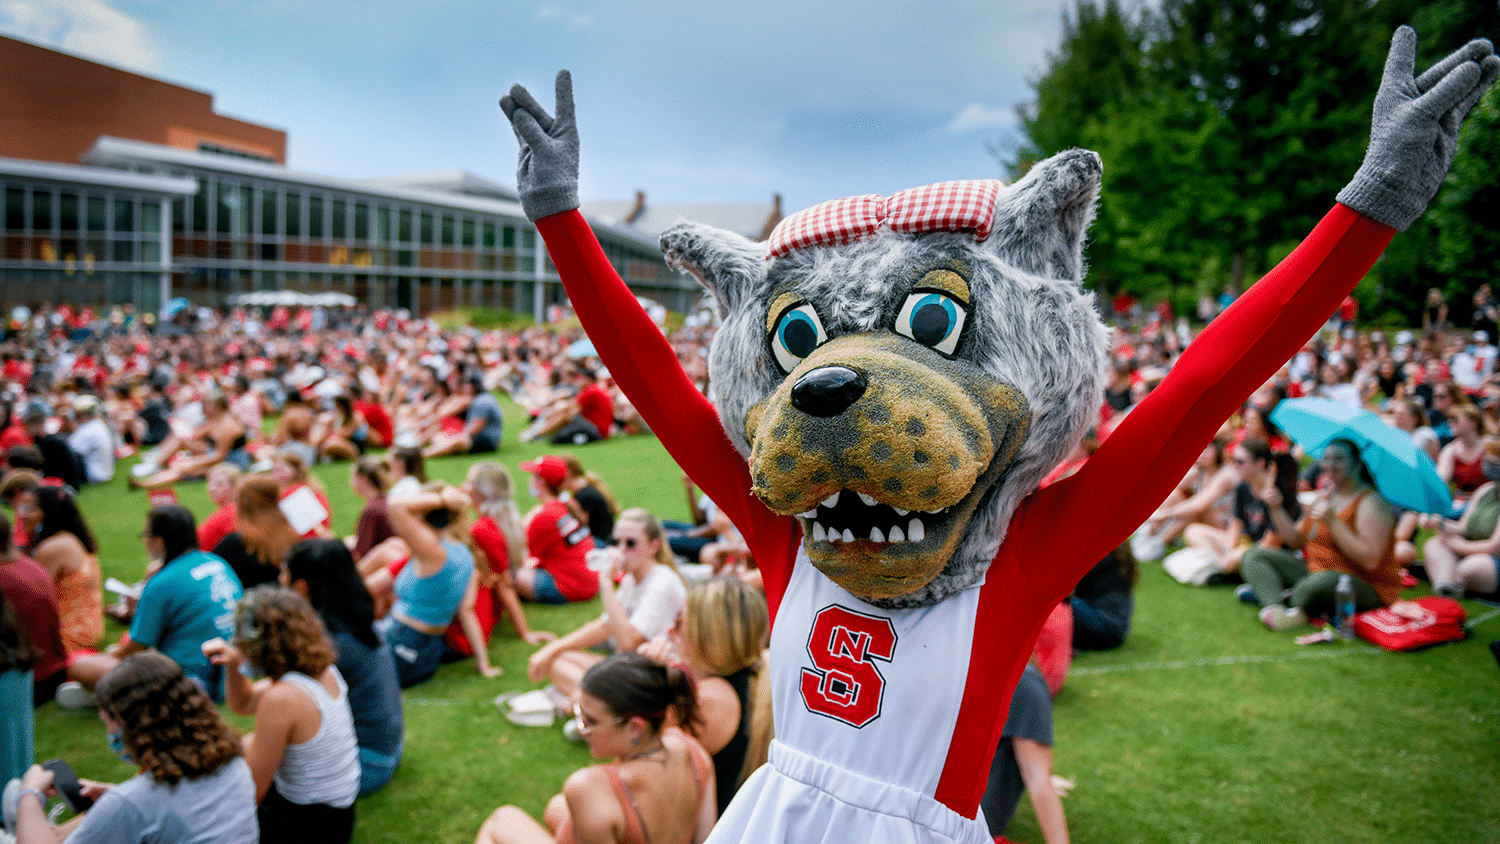 Ms. Wuf poses with wolf hands at convocation.